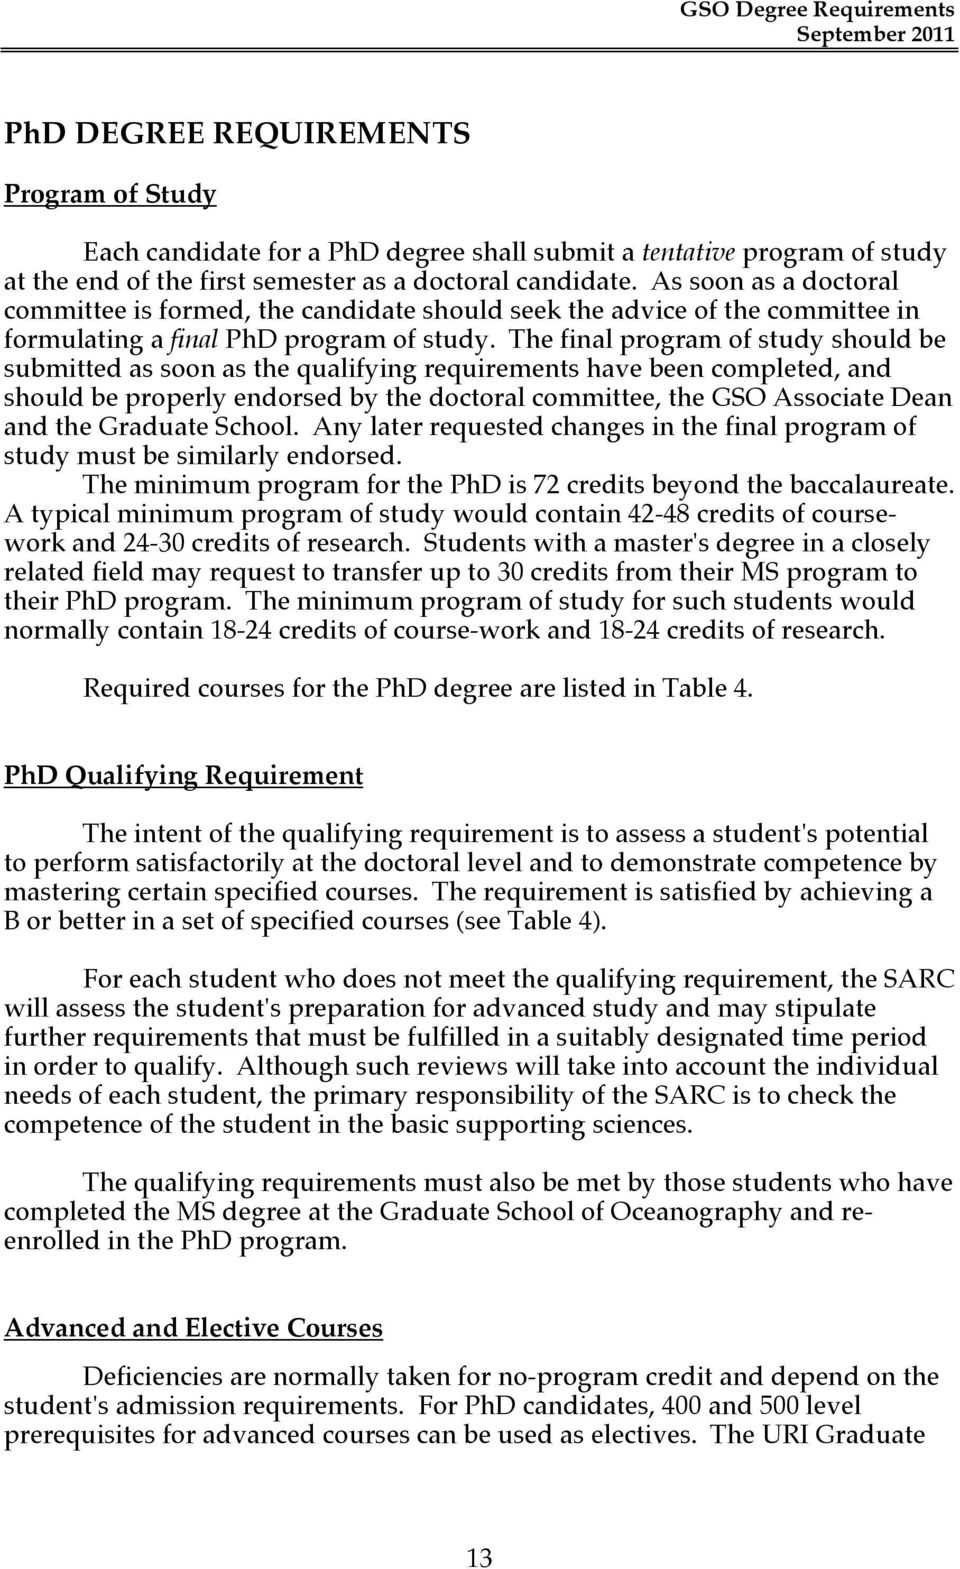 The final program of study should be submitted as soon as the qualifying requirements have been completed, and should be properly endorsed by the doctoral committee, the GSO Associate Dean and the